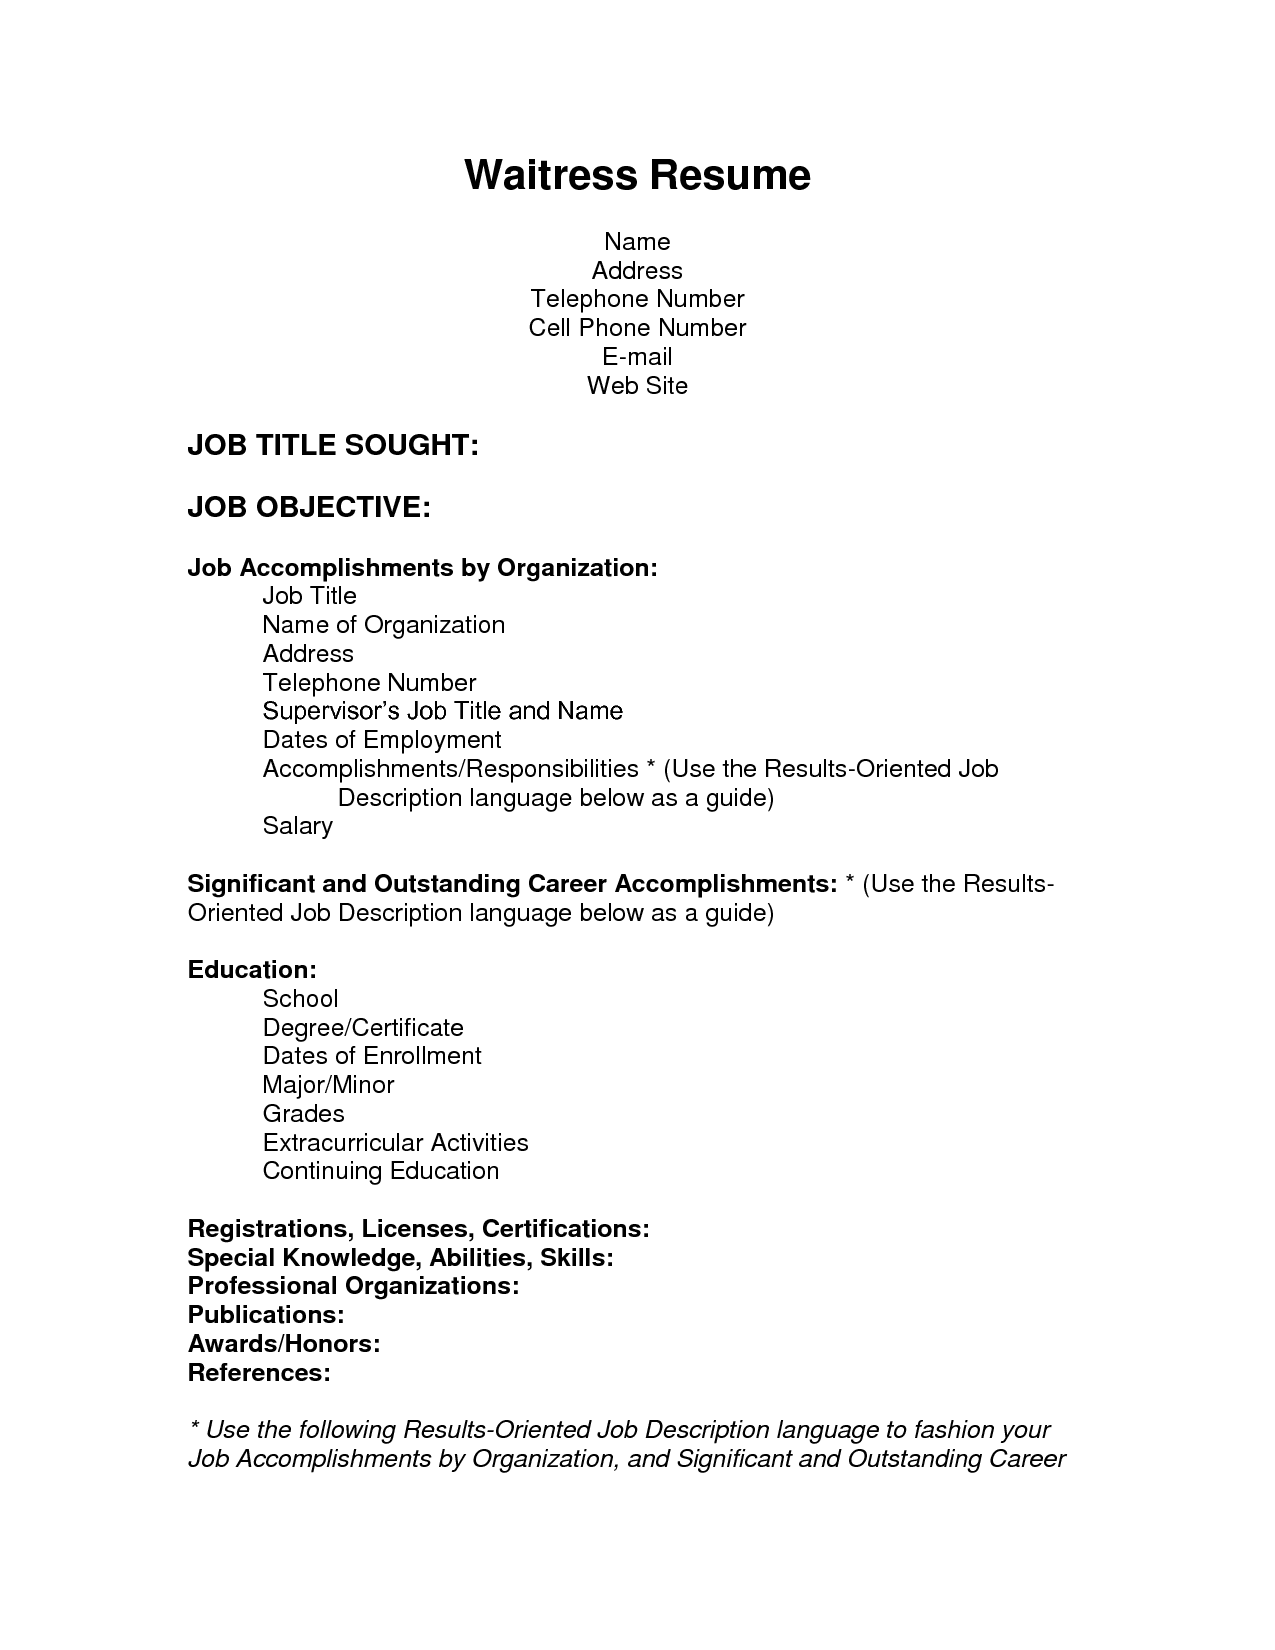 resume How To Write Responsibilities In Resume servers job description for resumes ninja turtletechrepairs co resumes